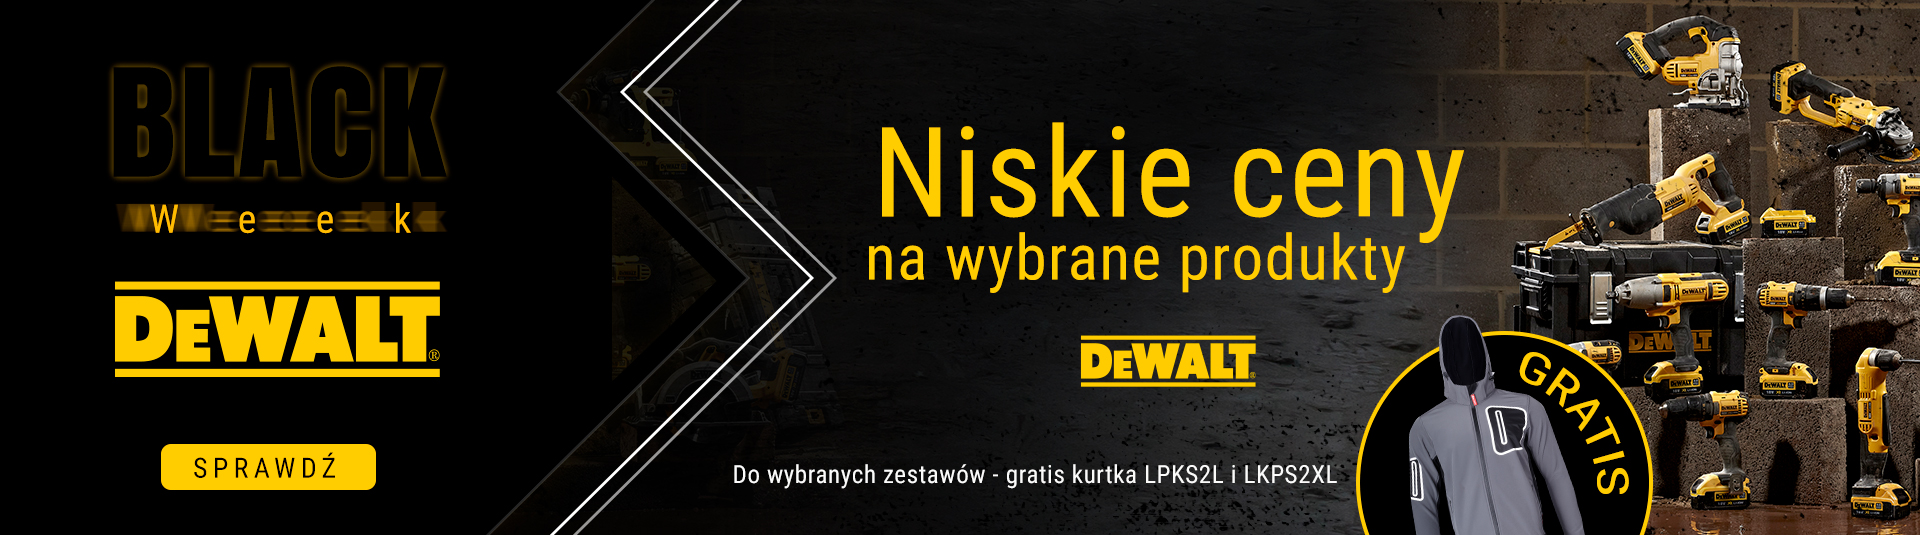 BLACK WEEK DeWalt